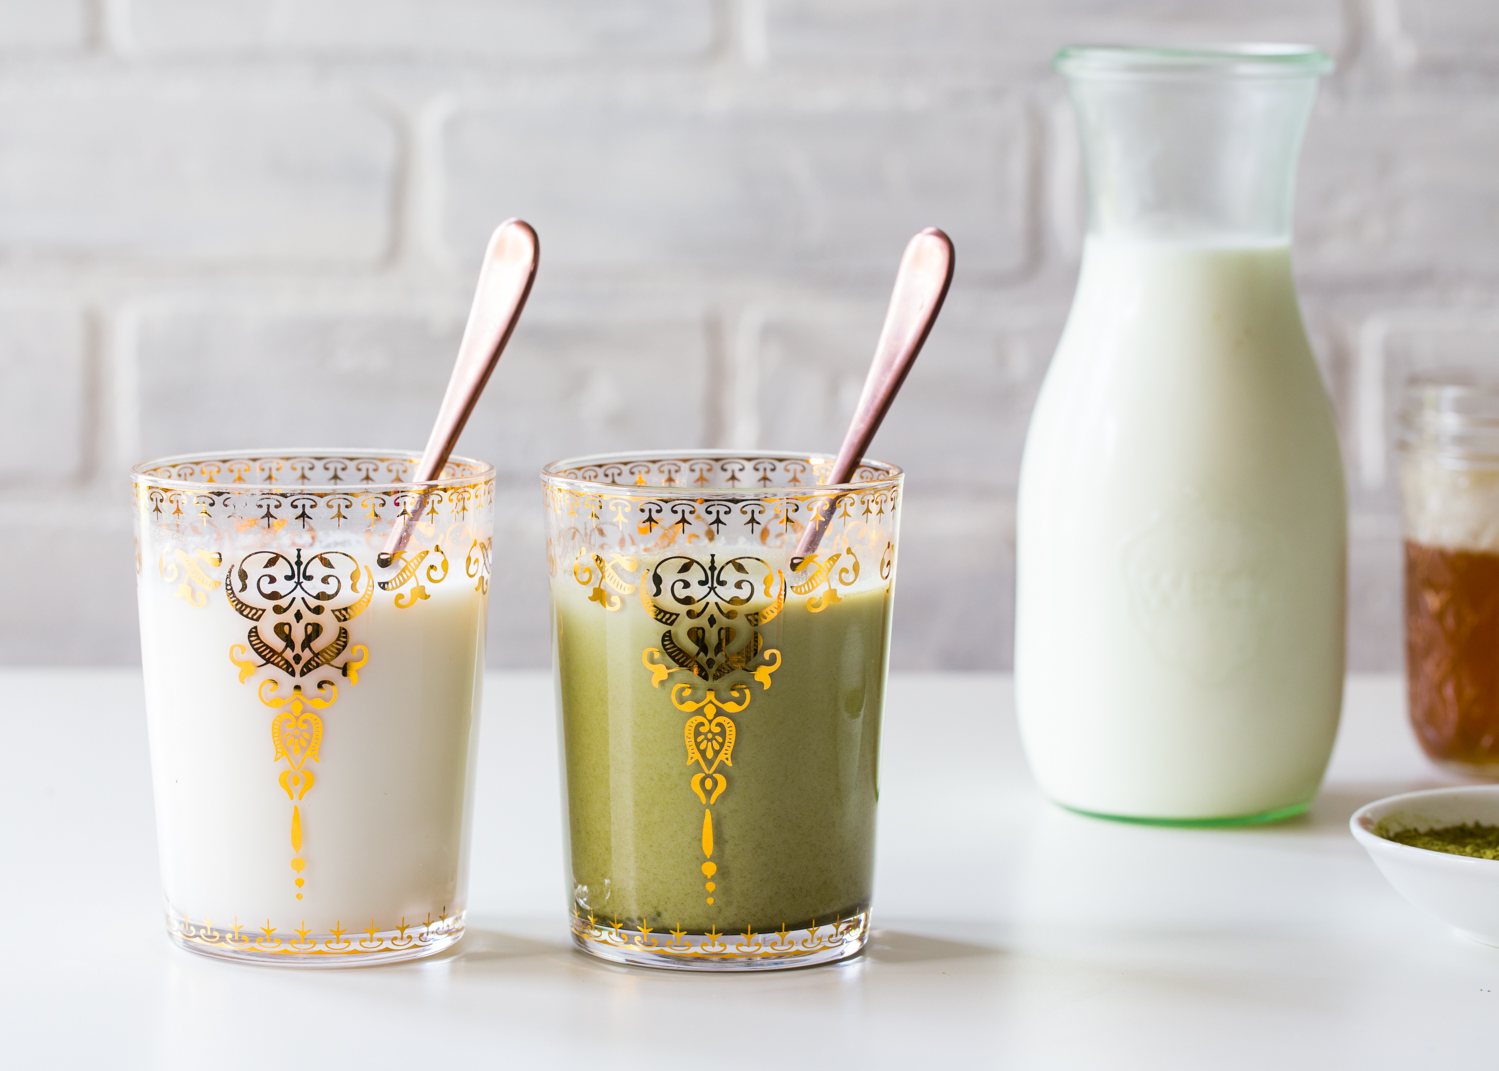 Flavored Milk - Lavender Honey Milk with a Matcha Twist